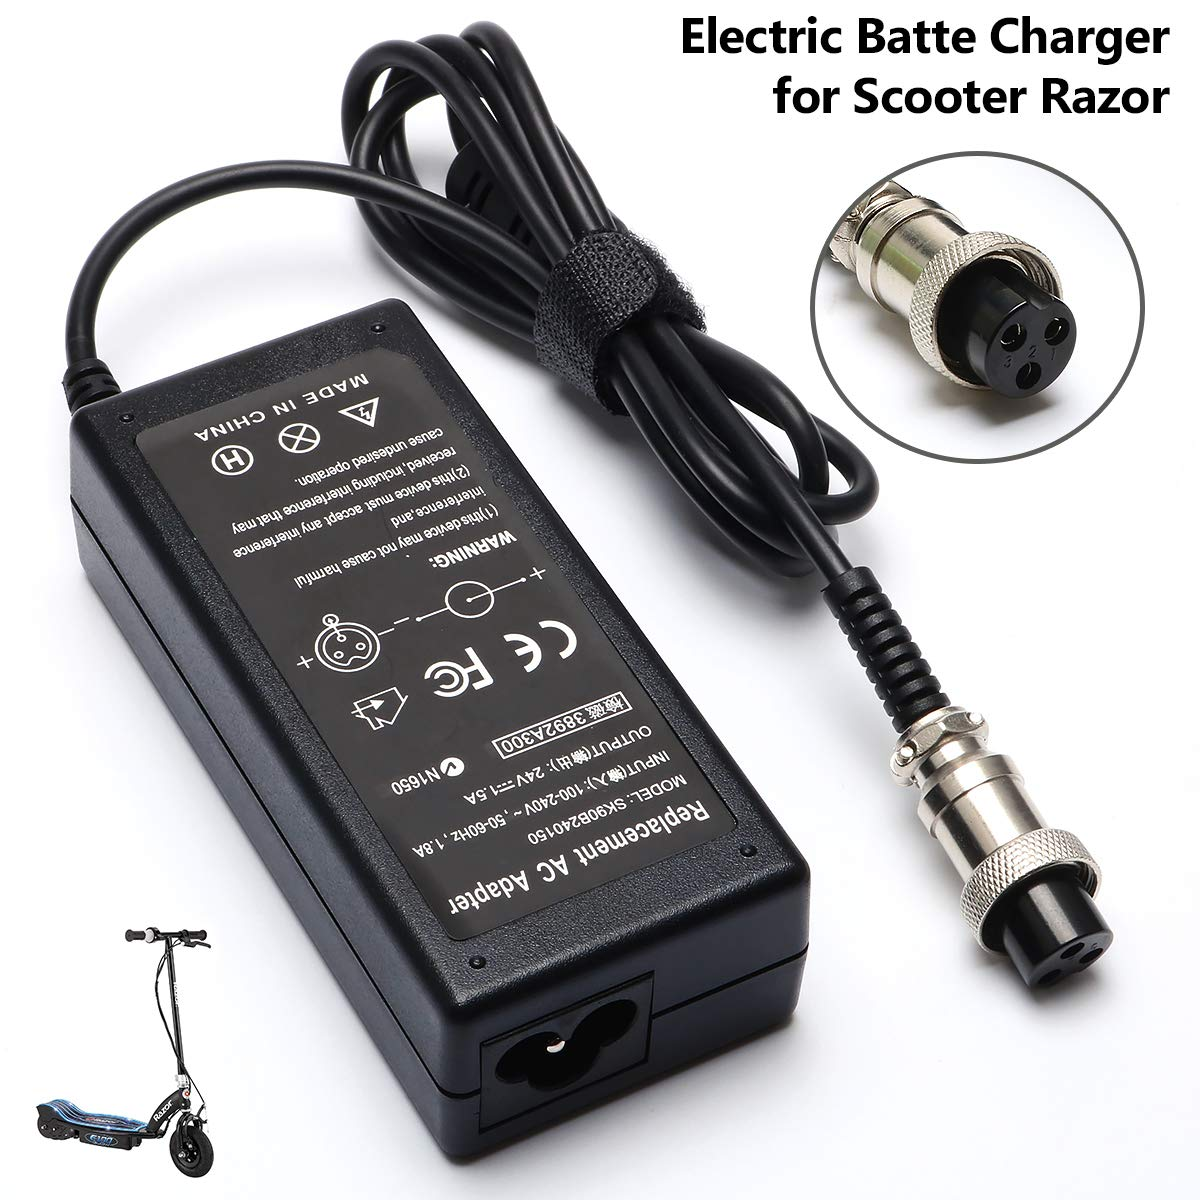 36W Electric Battery Charger for Scooter Razor E175 E100 E200 E200S ZR350 E300 Dirtbike E125 E150 E500 MX350 E225S E300S E325S MX400 PR200;Mini Chopper;Pocket Rocket;Sports Mod;Pocket Mod Cable by Janboo